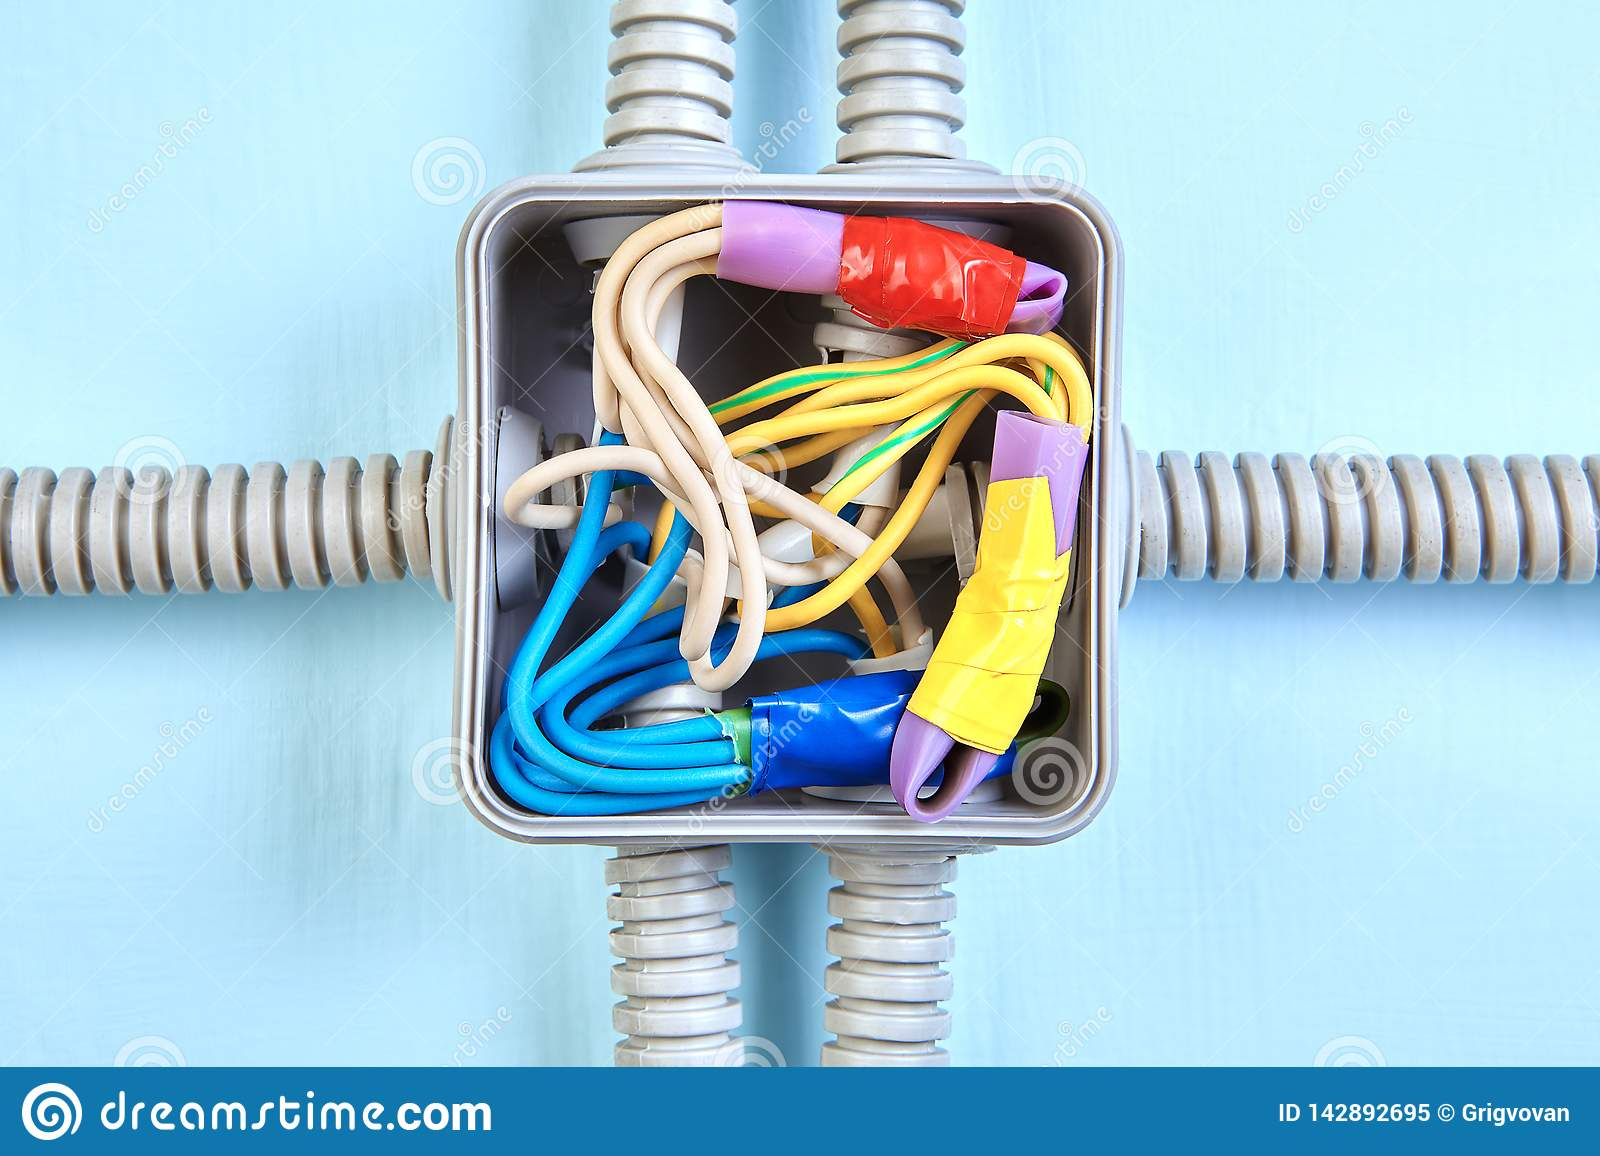 Electrical Wiring Junction Box, Close-up Stock Image - Image ... on